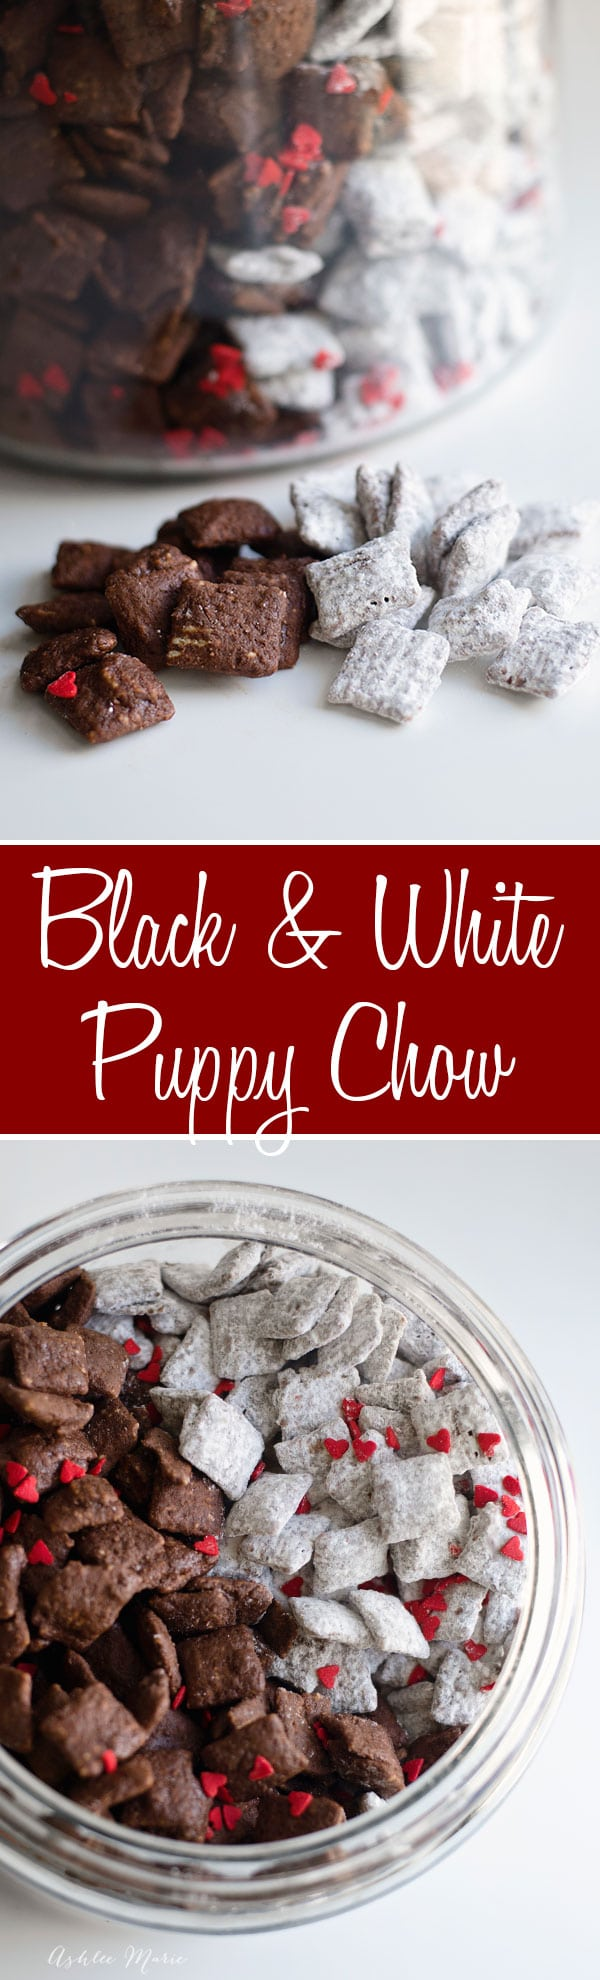 black and white puppy chow is perfect for disneys cruella deville